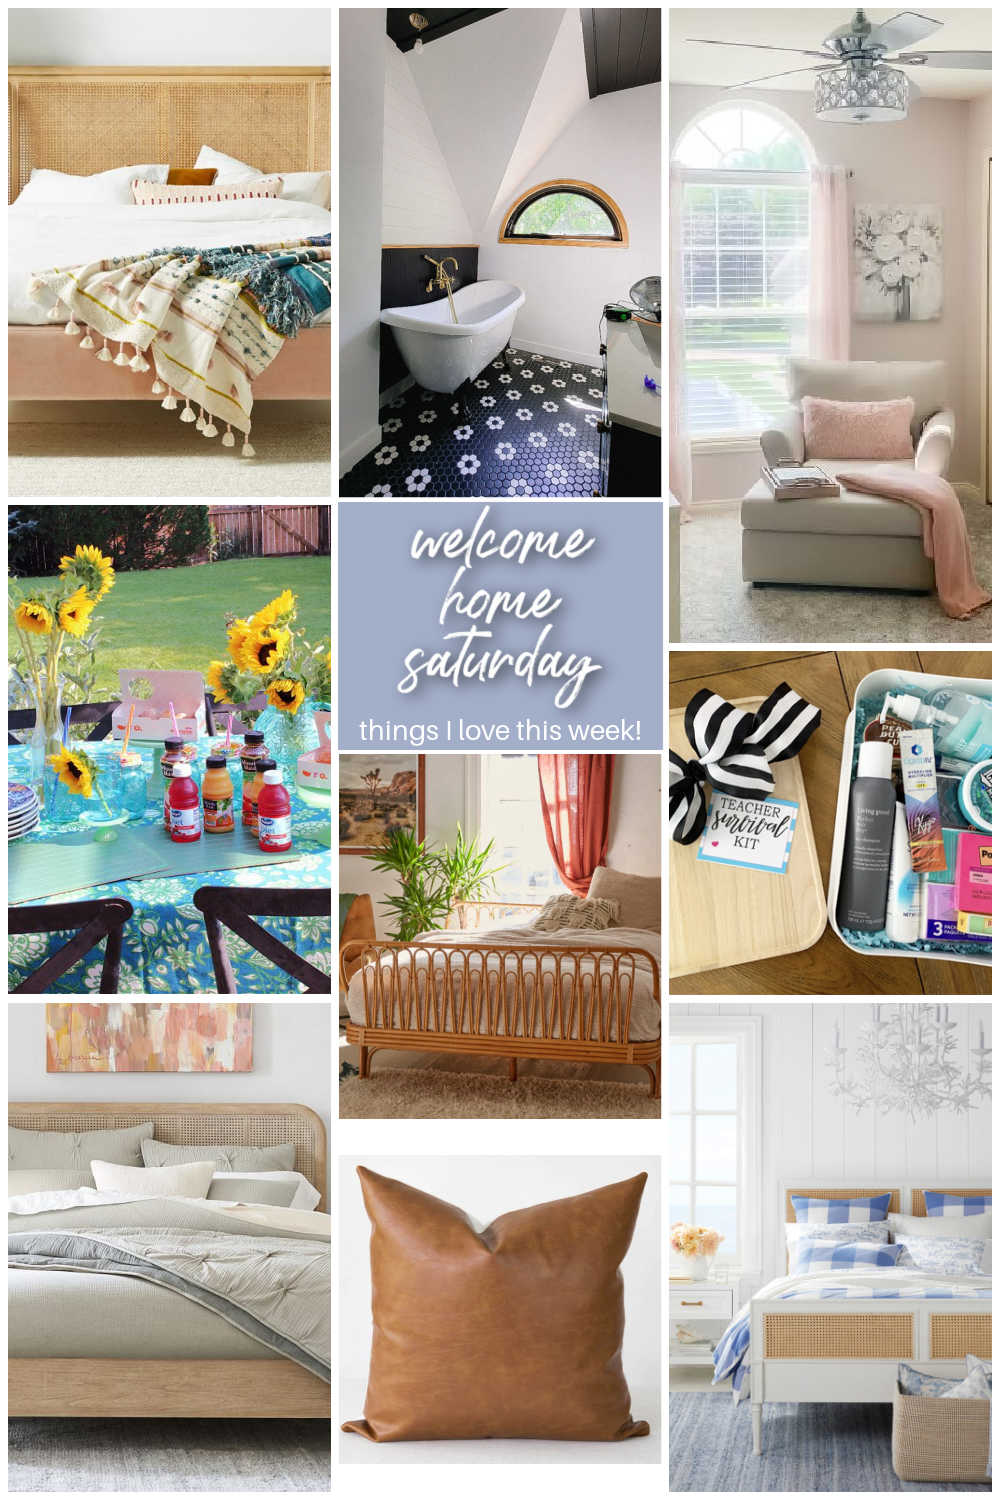 Welcome Home Saturday with Cottage in the Mitten. DIY projects, bathroom remodel update and things I love this week!